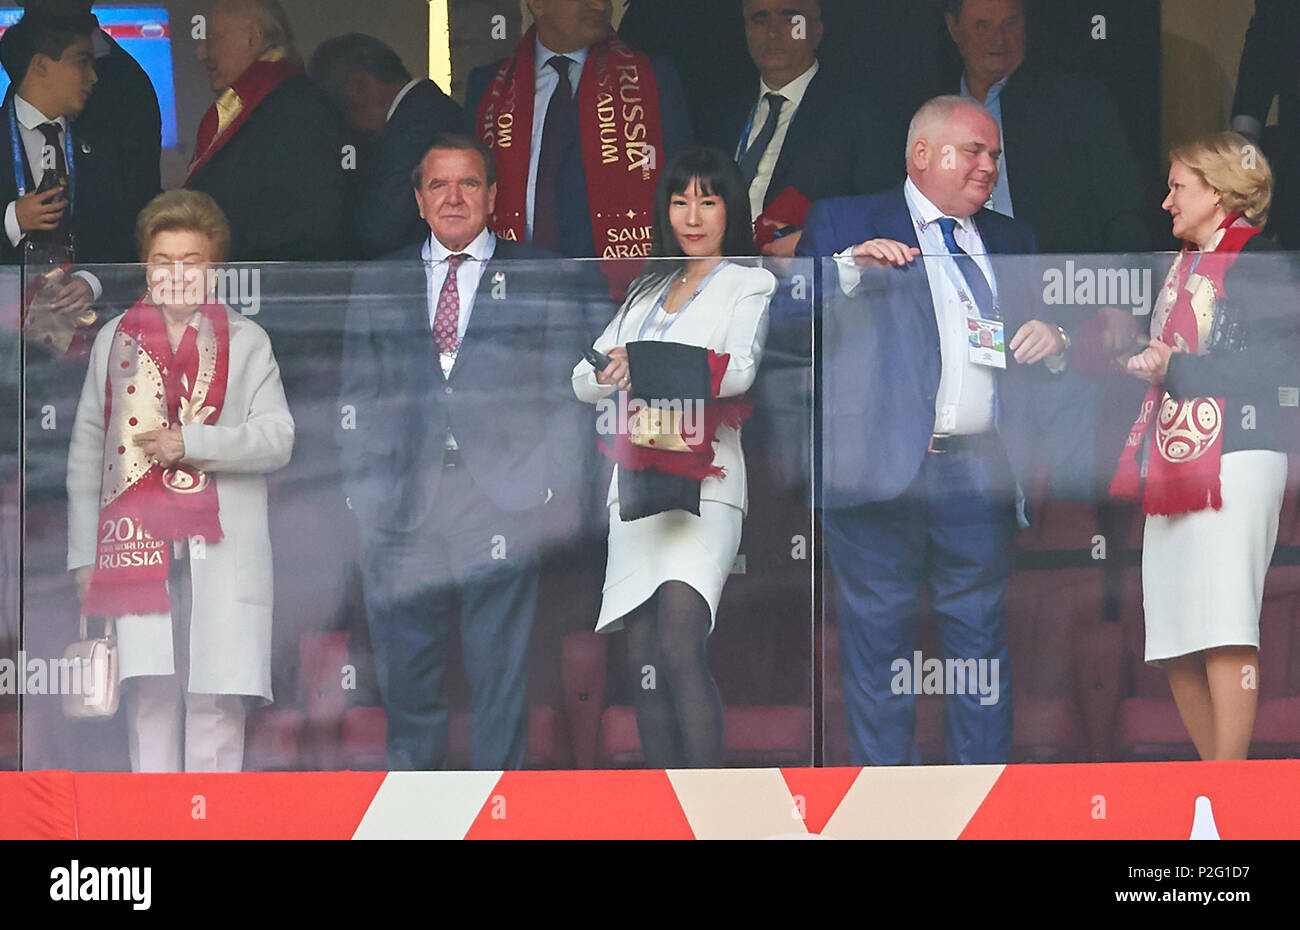 Russia- Saudi Arabia, Soccer, Moscow, June 14, 2018 Former german chancellor Gerhard Schröder with his wife So Yeon Kim,  RUSSIA - SAUDI ARABIA 5-0 FIFA WORLD CUP 2018 RUSSIA opening match, Season 2018/2019,  June 14, 2018 Luzhniki Stadium in Moscow, Russia. © Peter Schatz / Alamy Live News - Stock Image